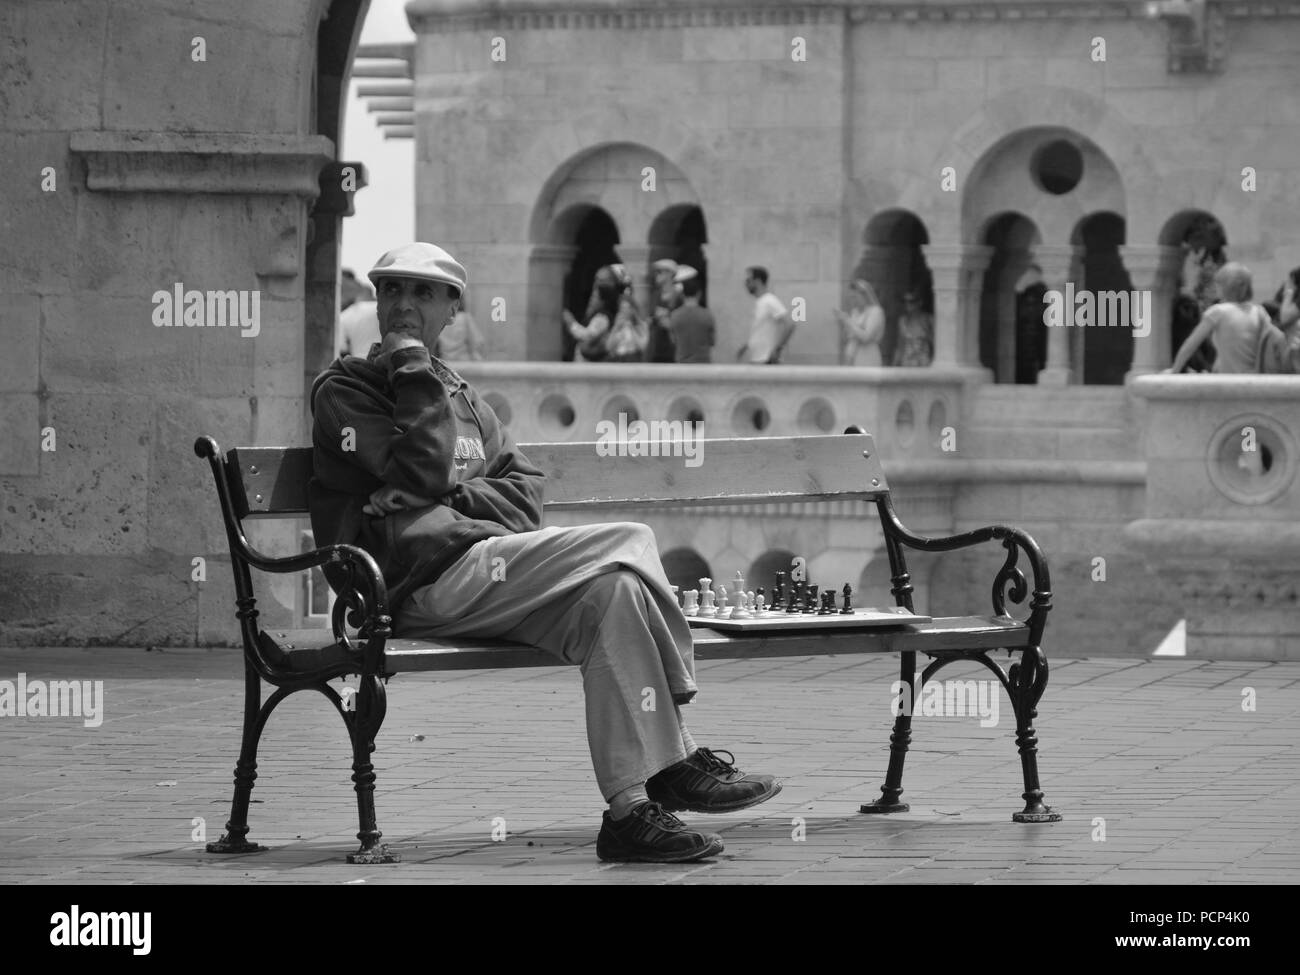 A chess player sitting on a bench and waiting some people to come and play with him at Fishermen's Bastion - Stock Image